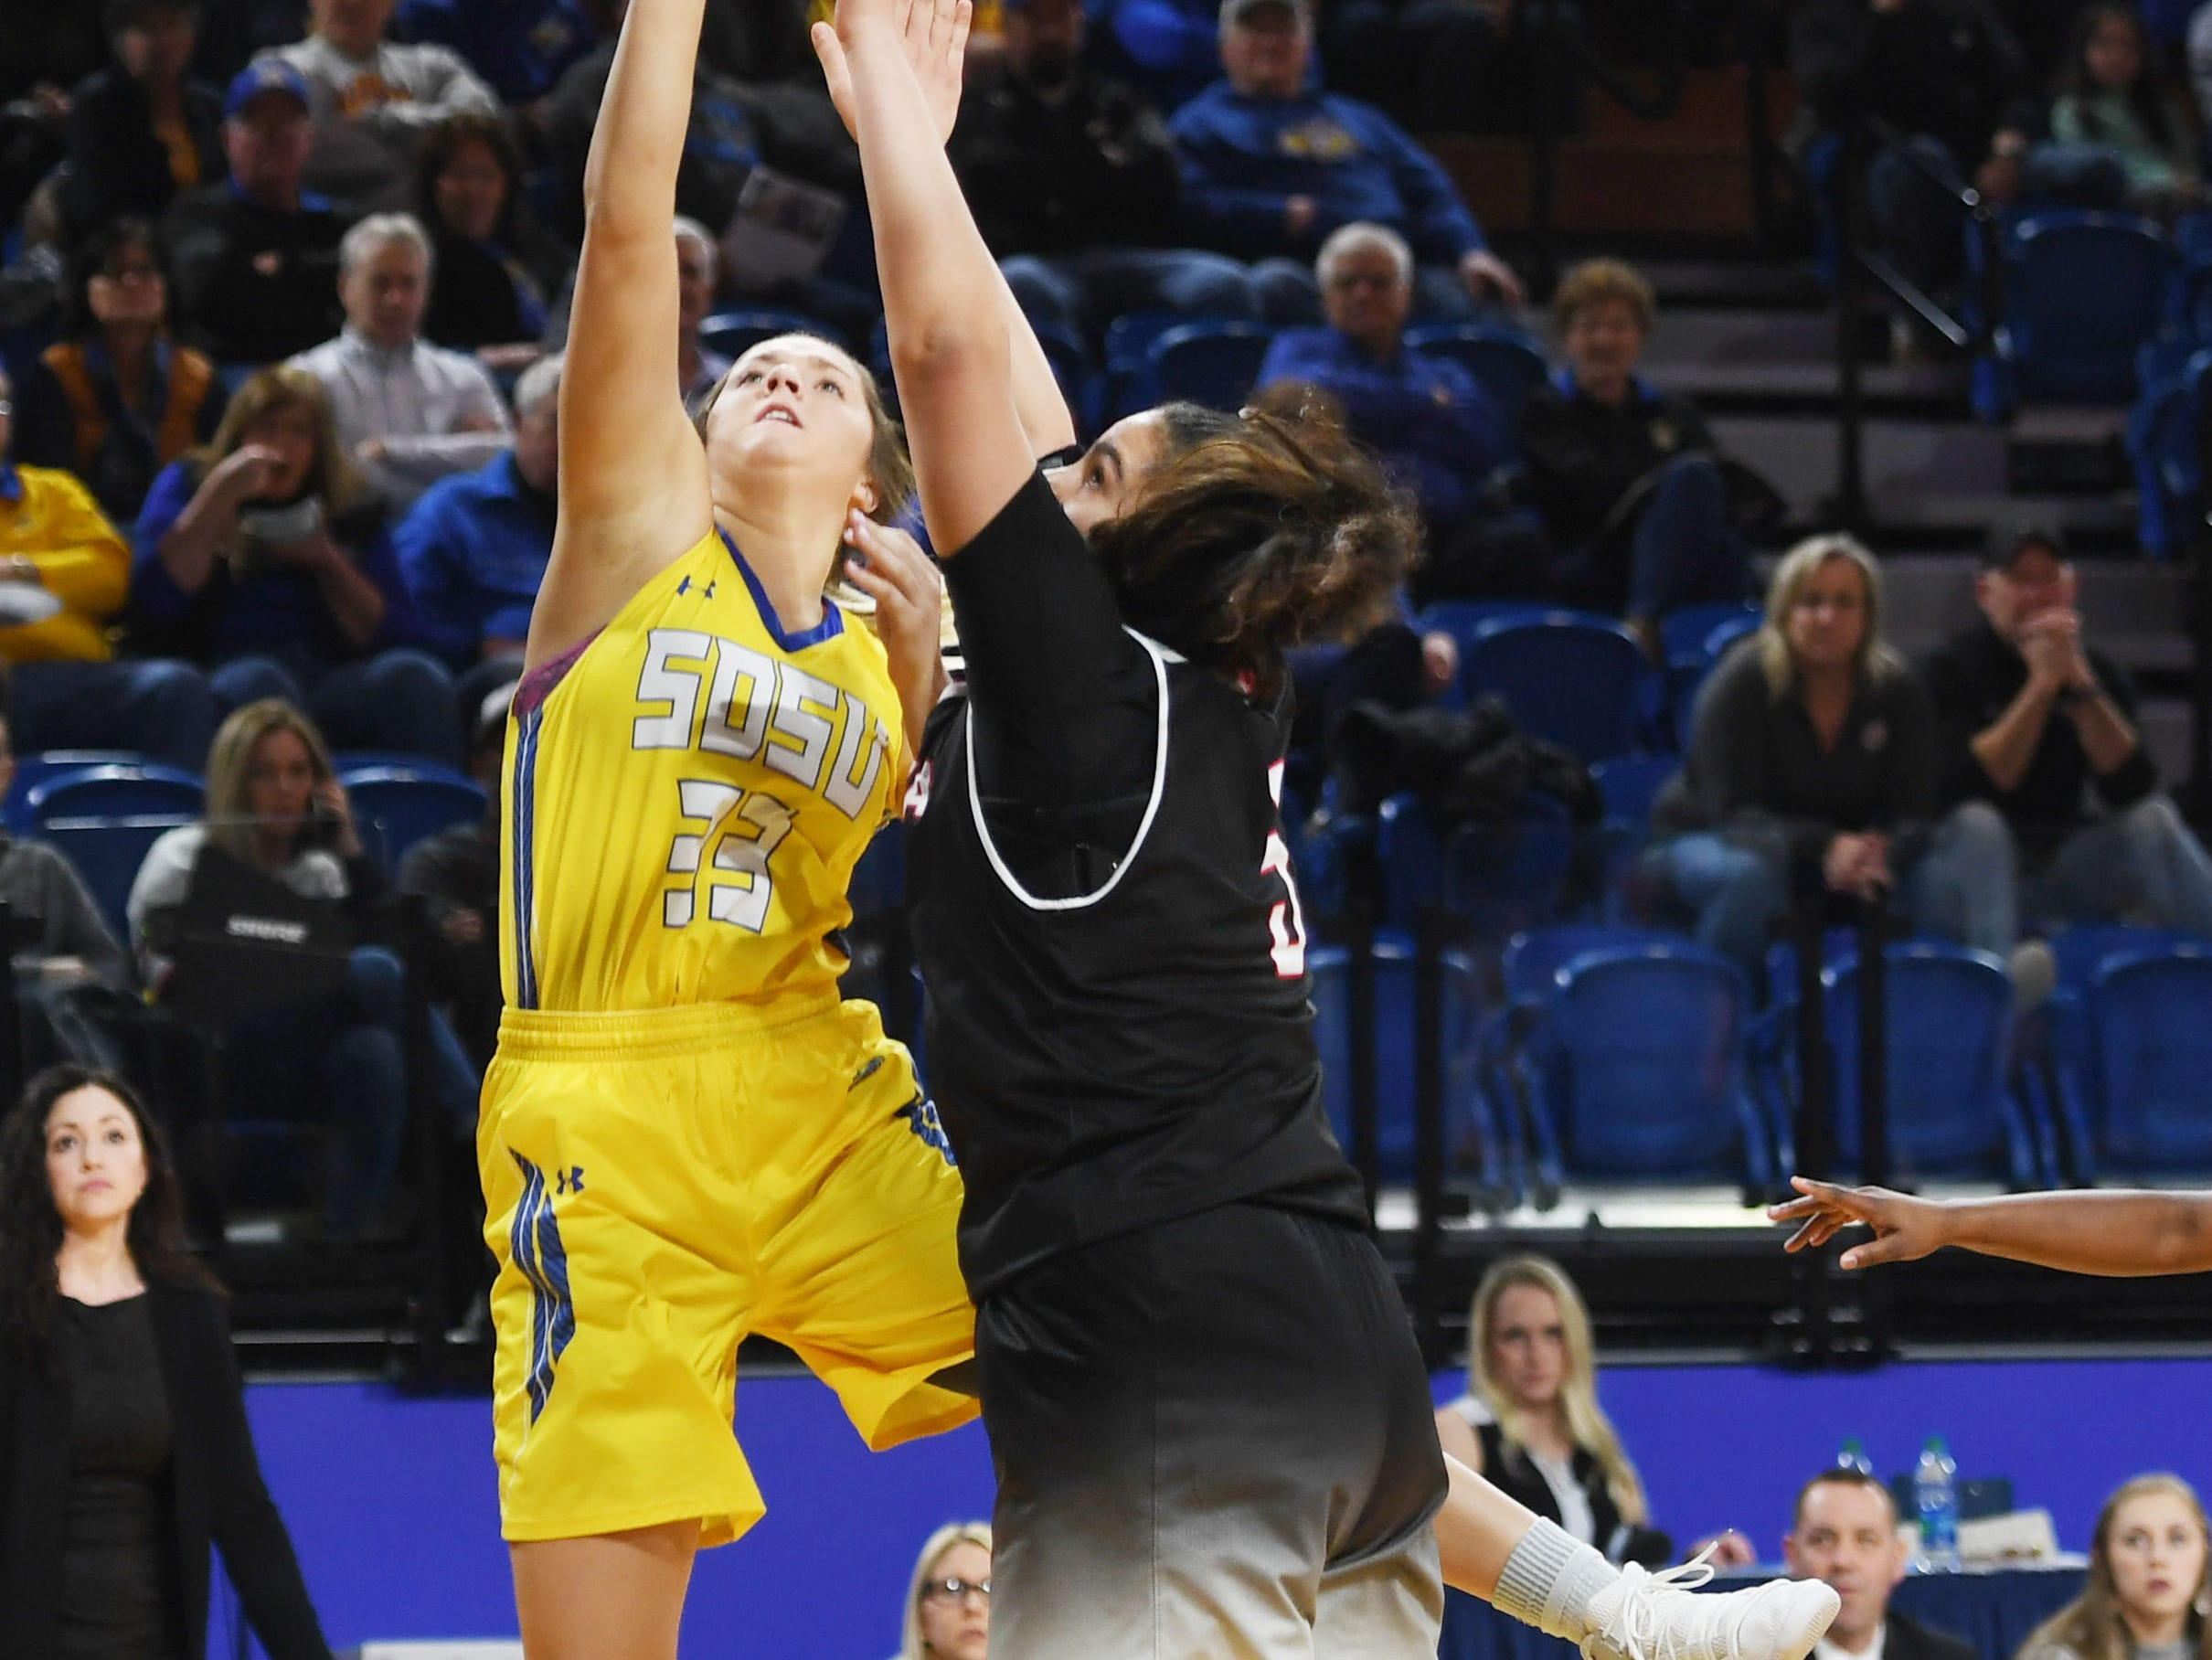 SDSU's Paiton Burckhard takes a shot against Omaha during the game Saturday, Jan. 26, at Frost Arena in Brookings.